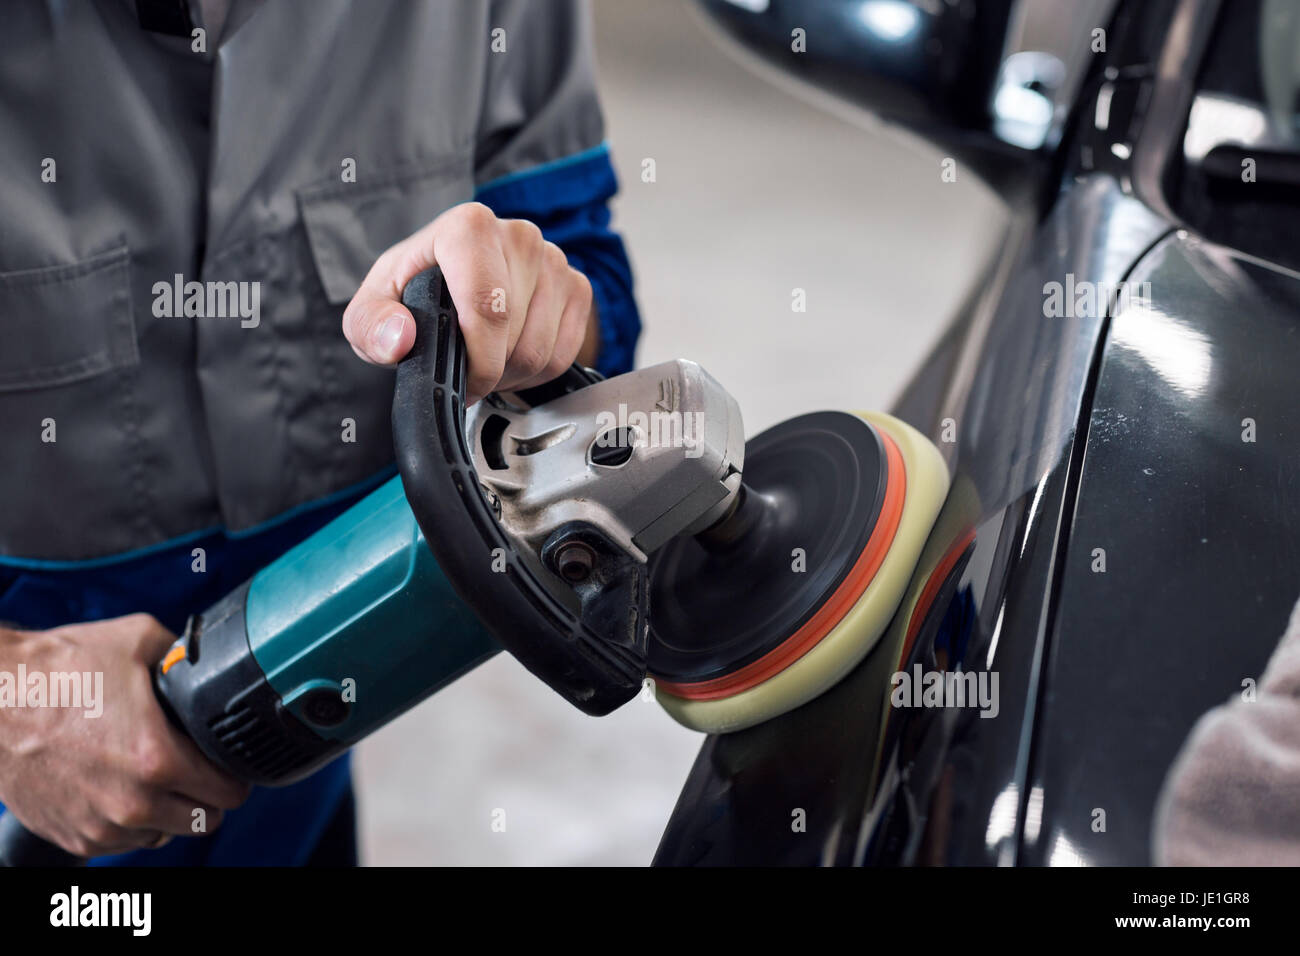 Close-up of hands worker using polisher to polish a black car body in the workshop - Stock Image